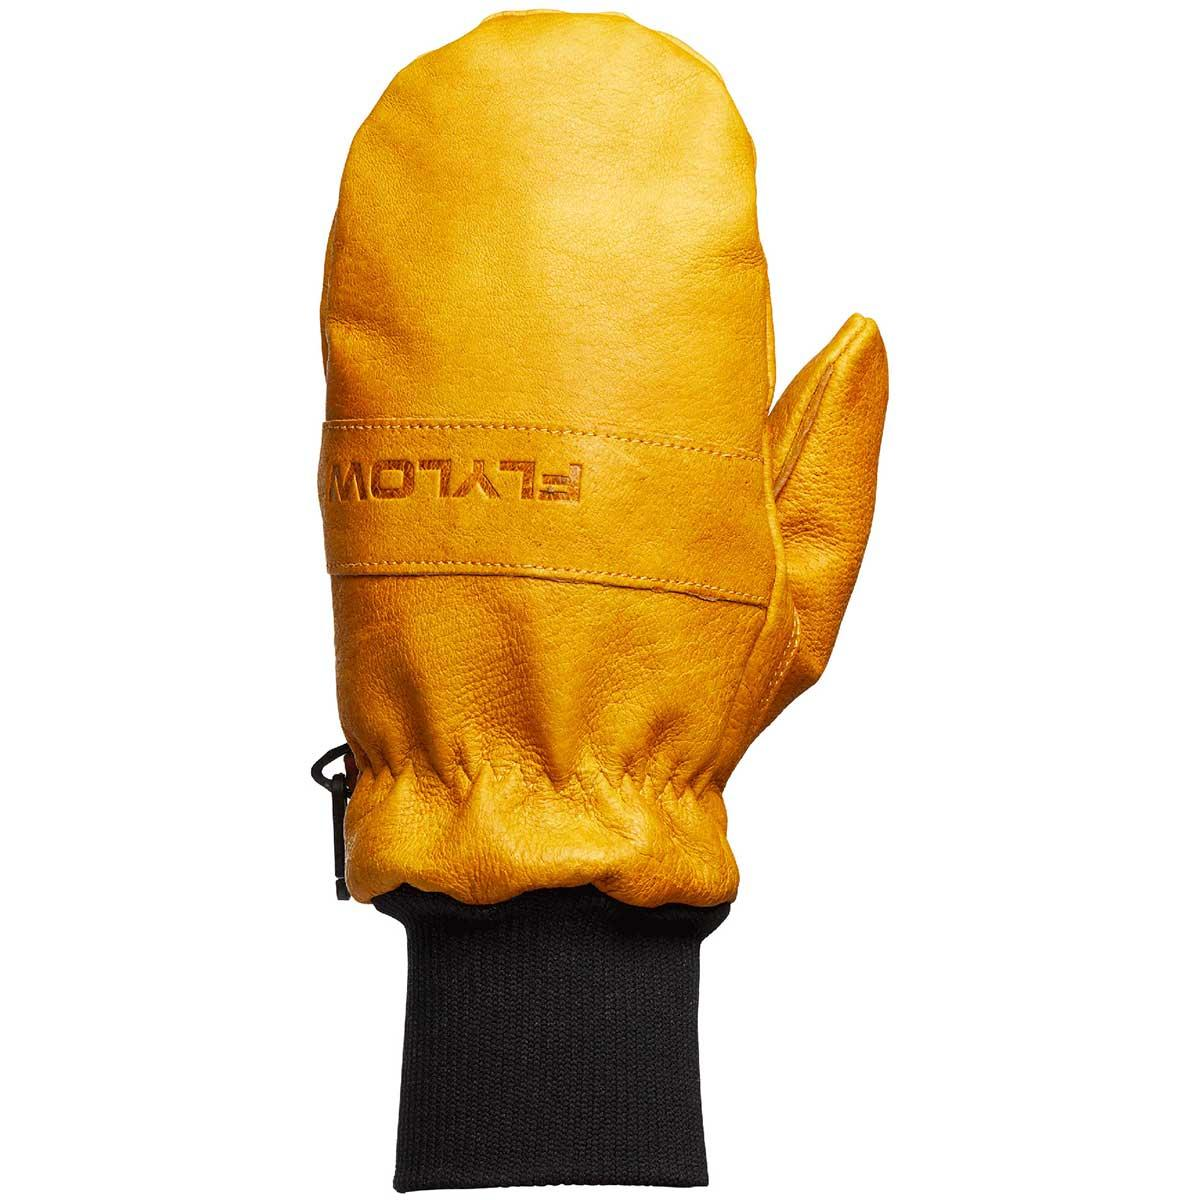 Flylow Oven Mitt in Natural back of hand view